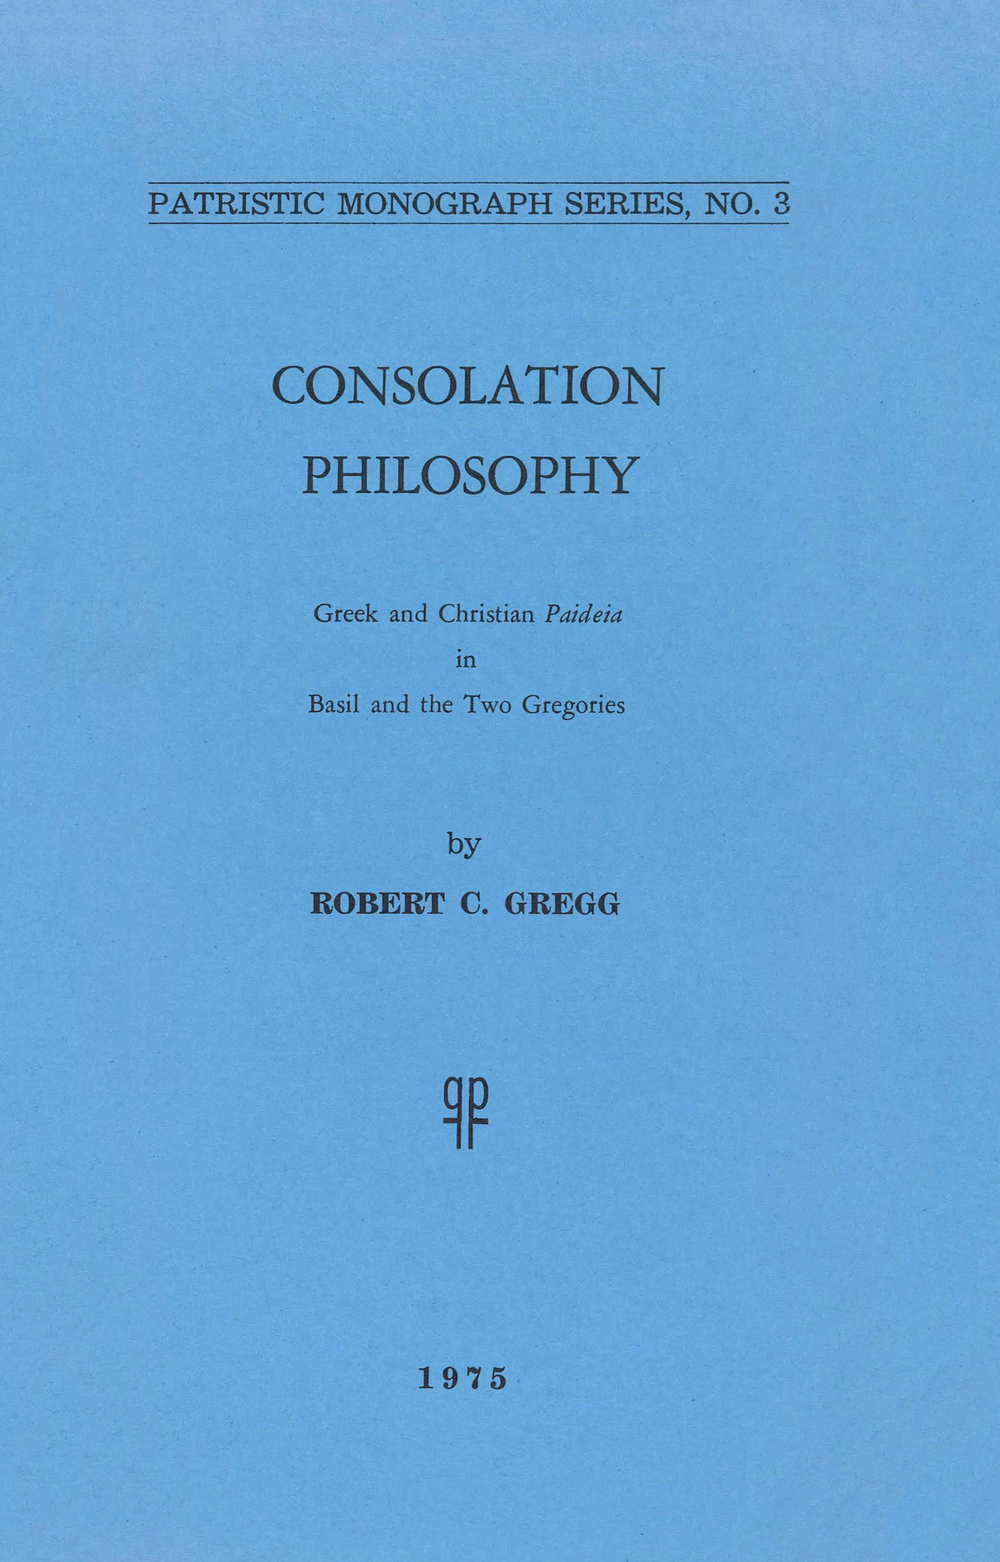 ConsolationPhilosophyCover_BlueEvened_RicherBlue.png